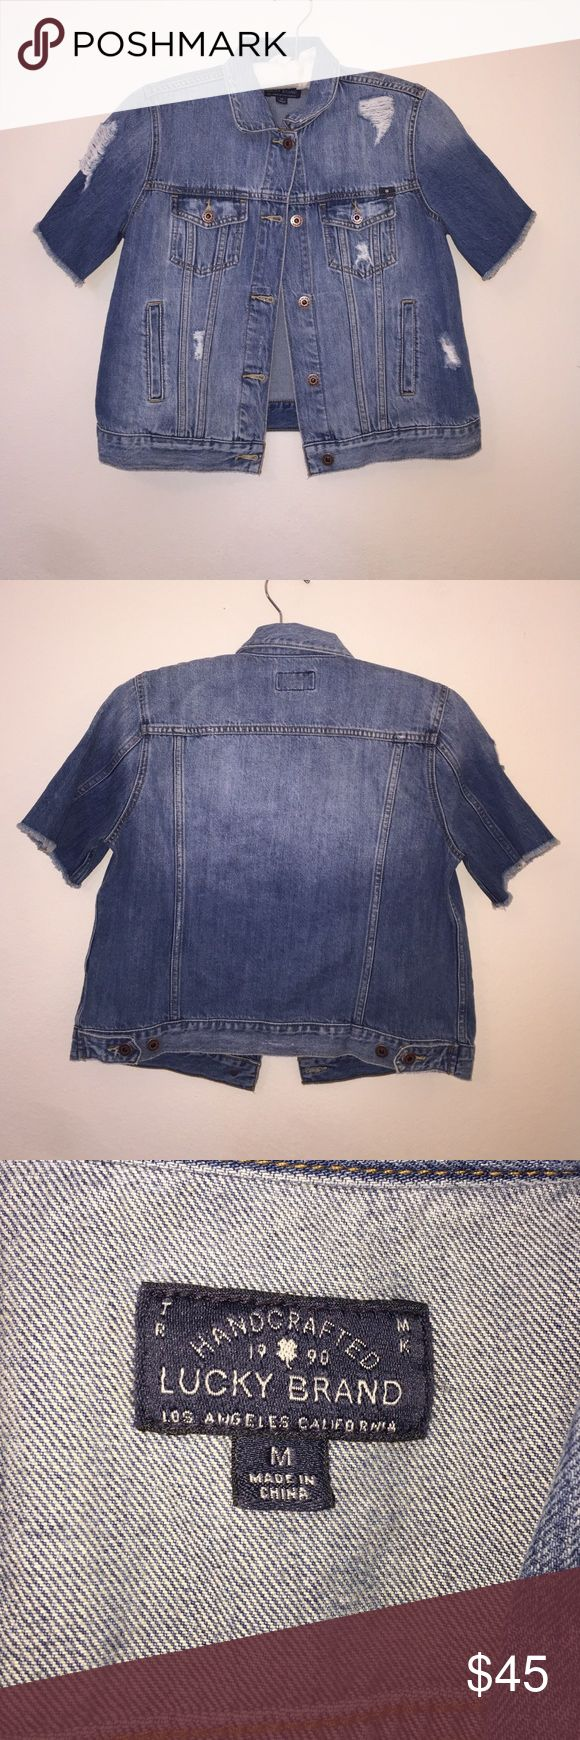 """Lucky Short Sleeve Jean Jacket Item in excellent condition! Size is a women's M. Measurements: 21"""" long. 18"""" armpit-armpit. Lucky Brand Jackets & Coats"""